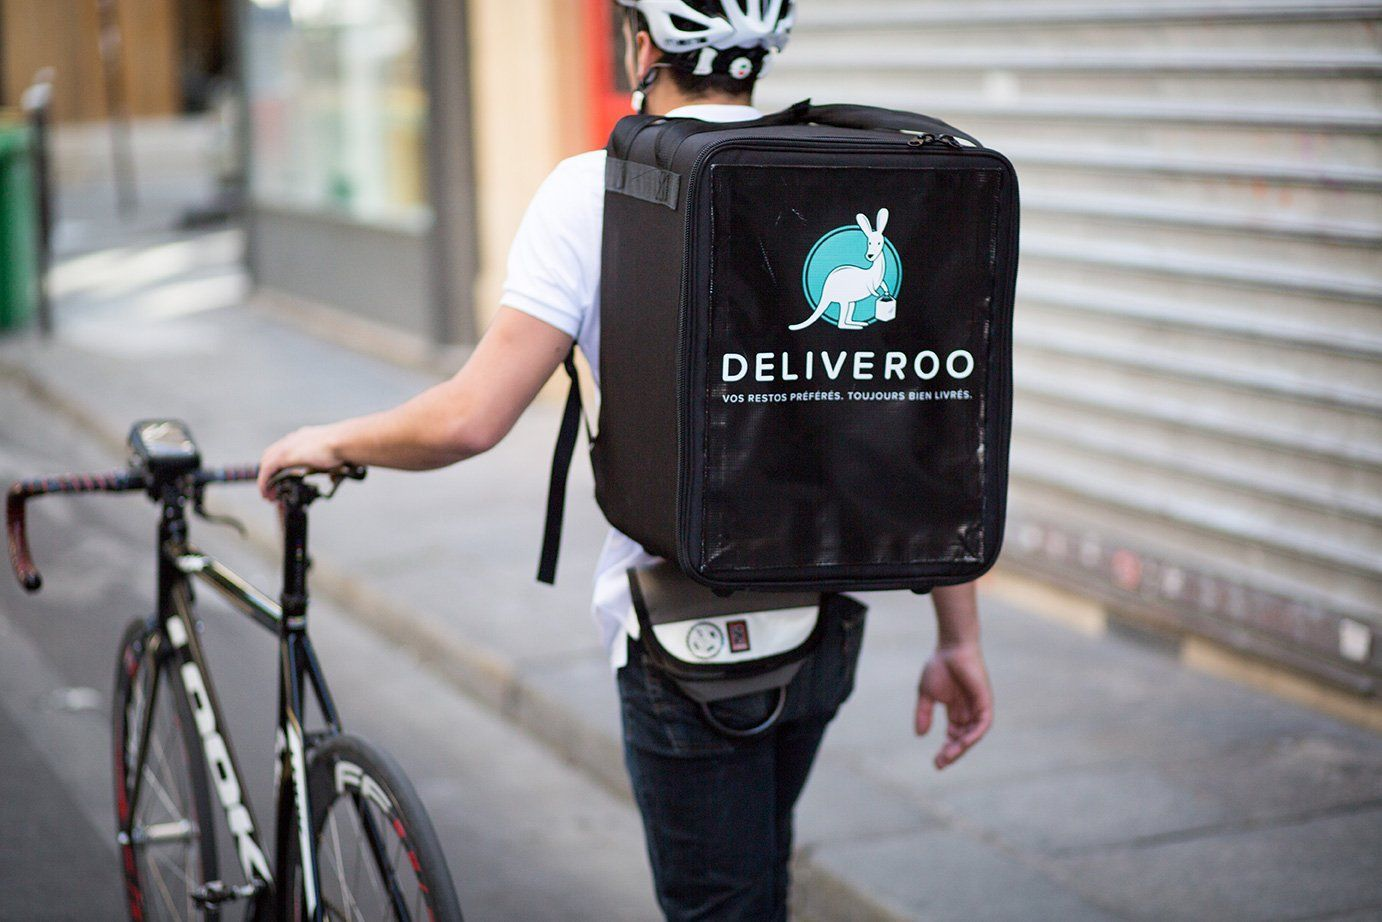 London Startup Deliveroo Has Raised 100 Million For Its